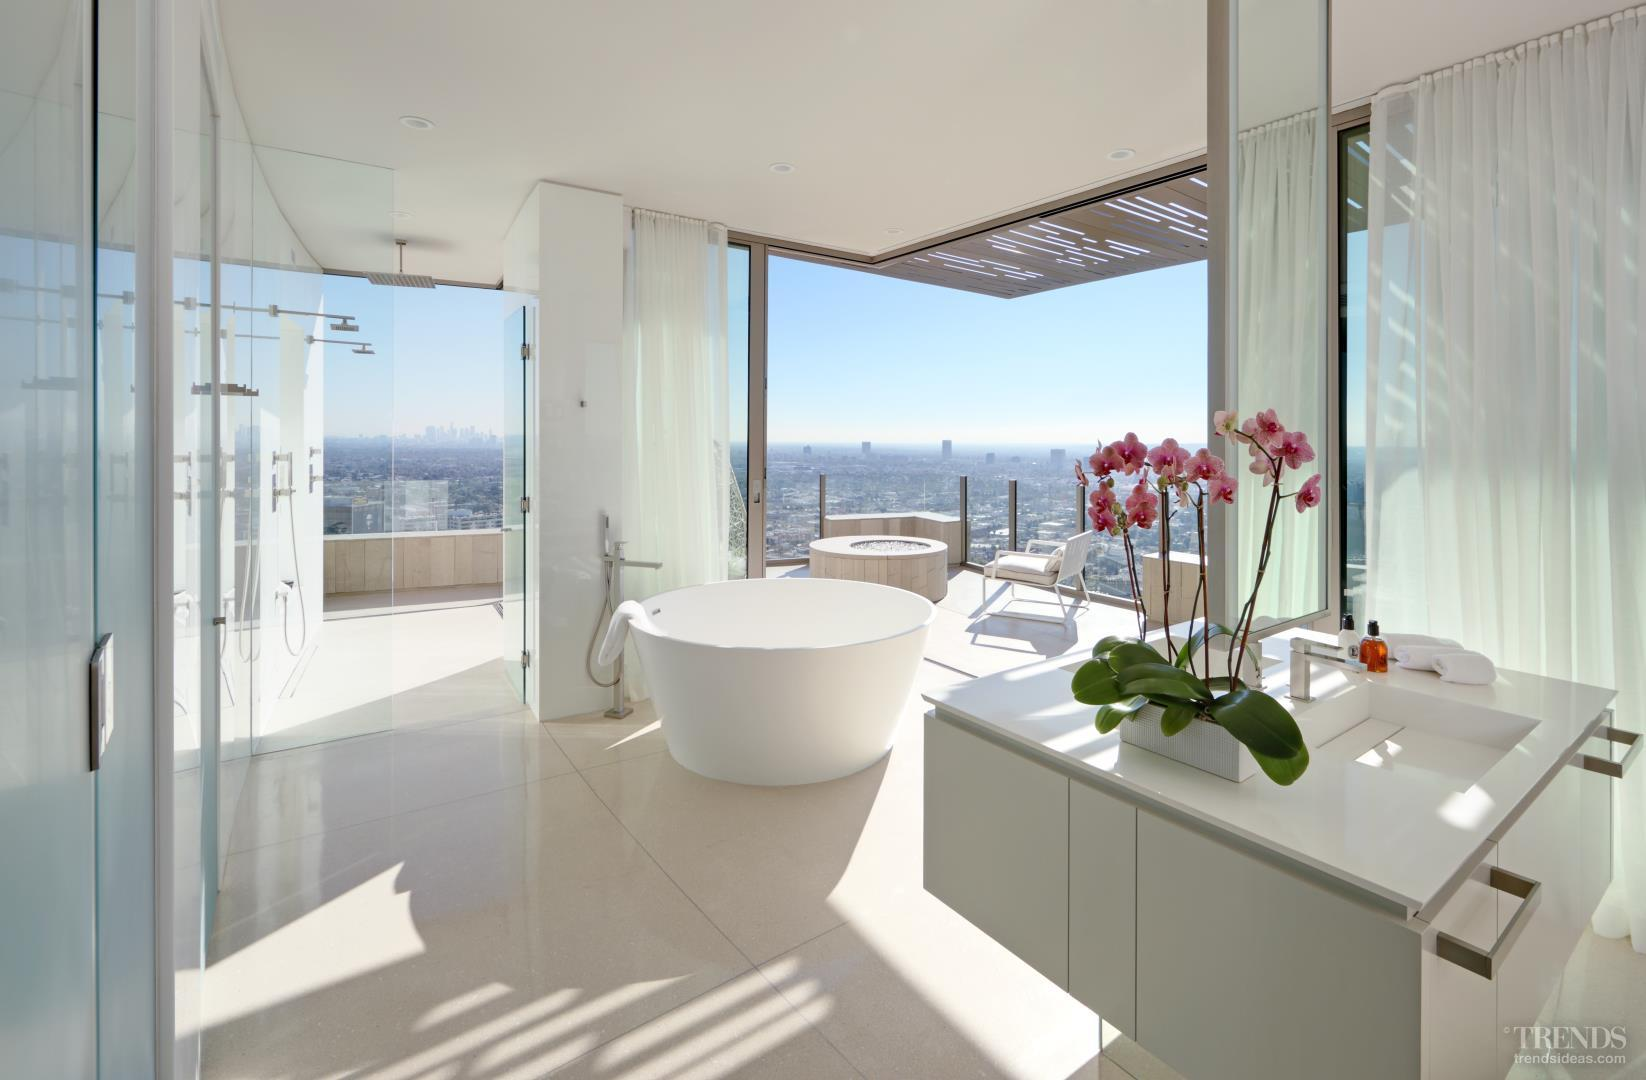 White bathroom with stone floor, minimalist design and dramatic outlooks